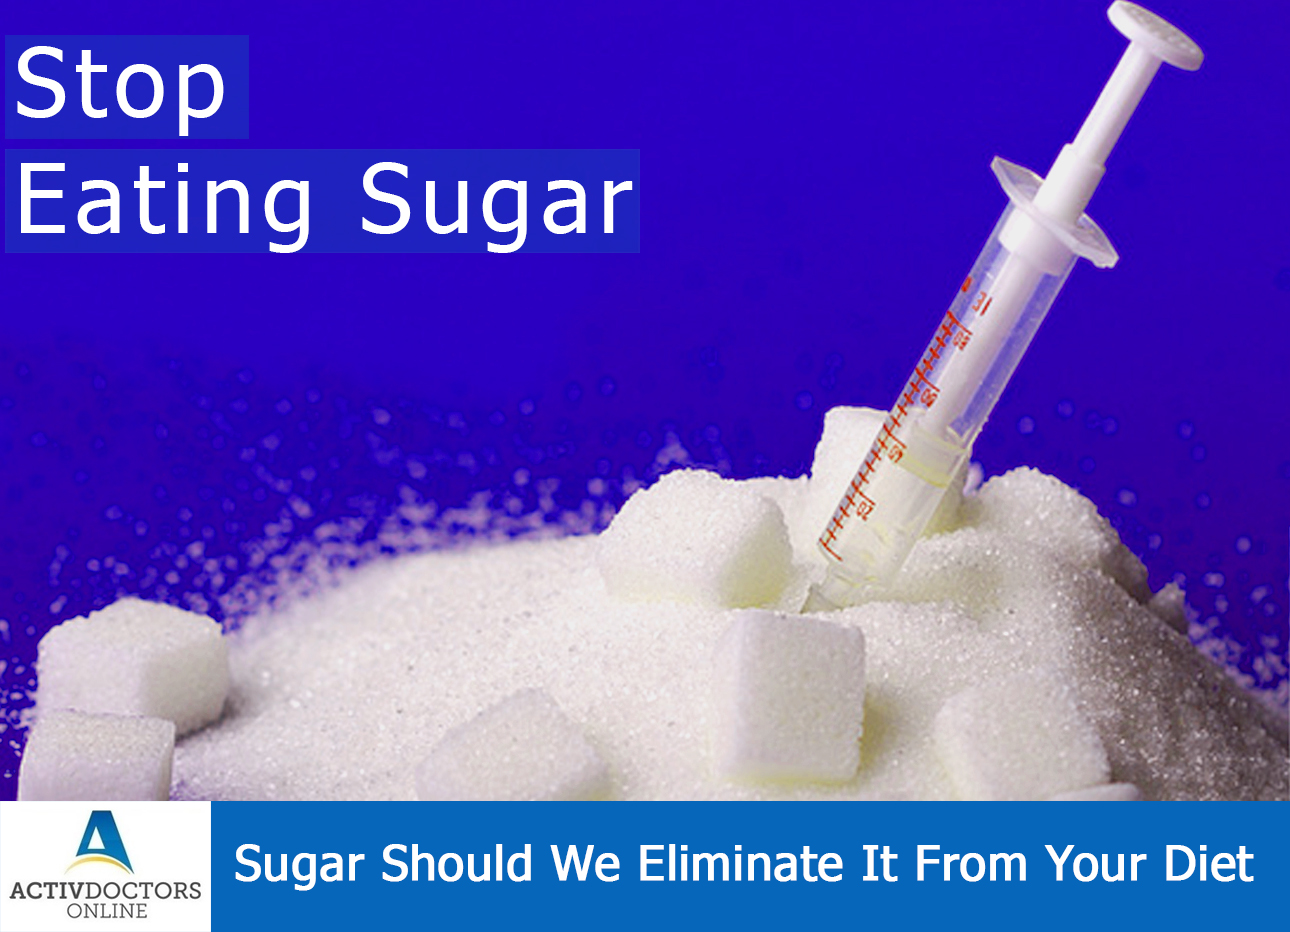 Sugar Should We Eliminate It From Our Diet